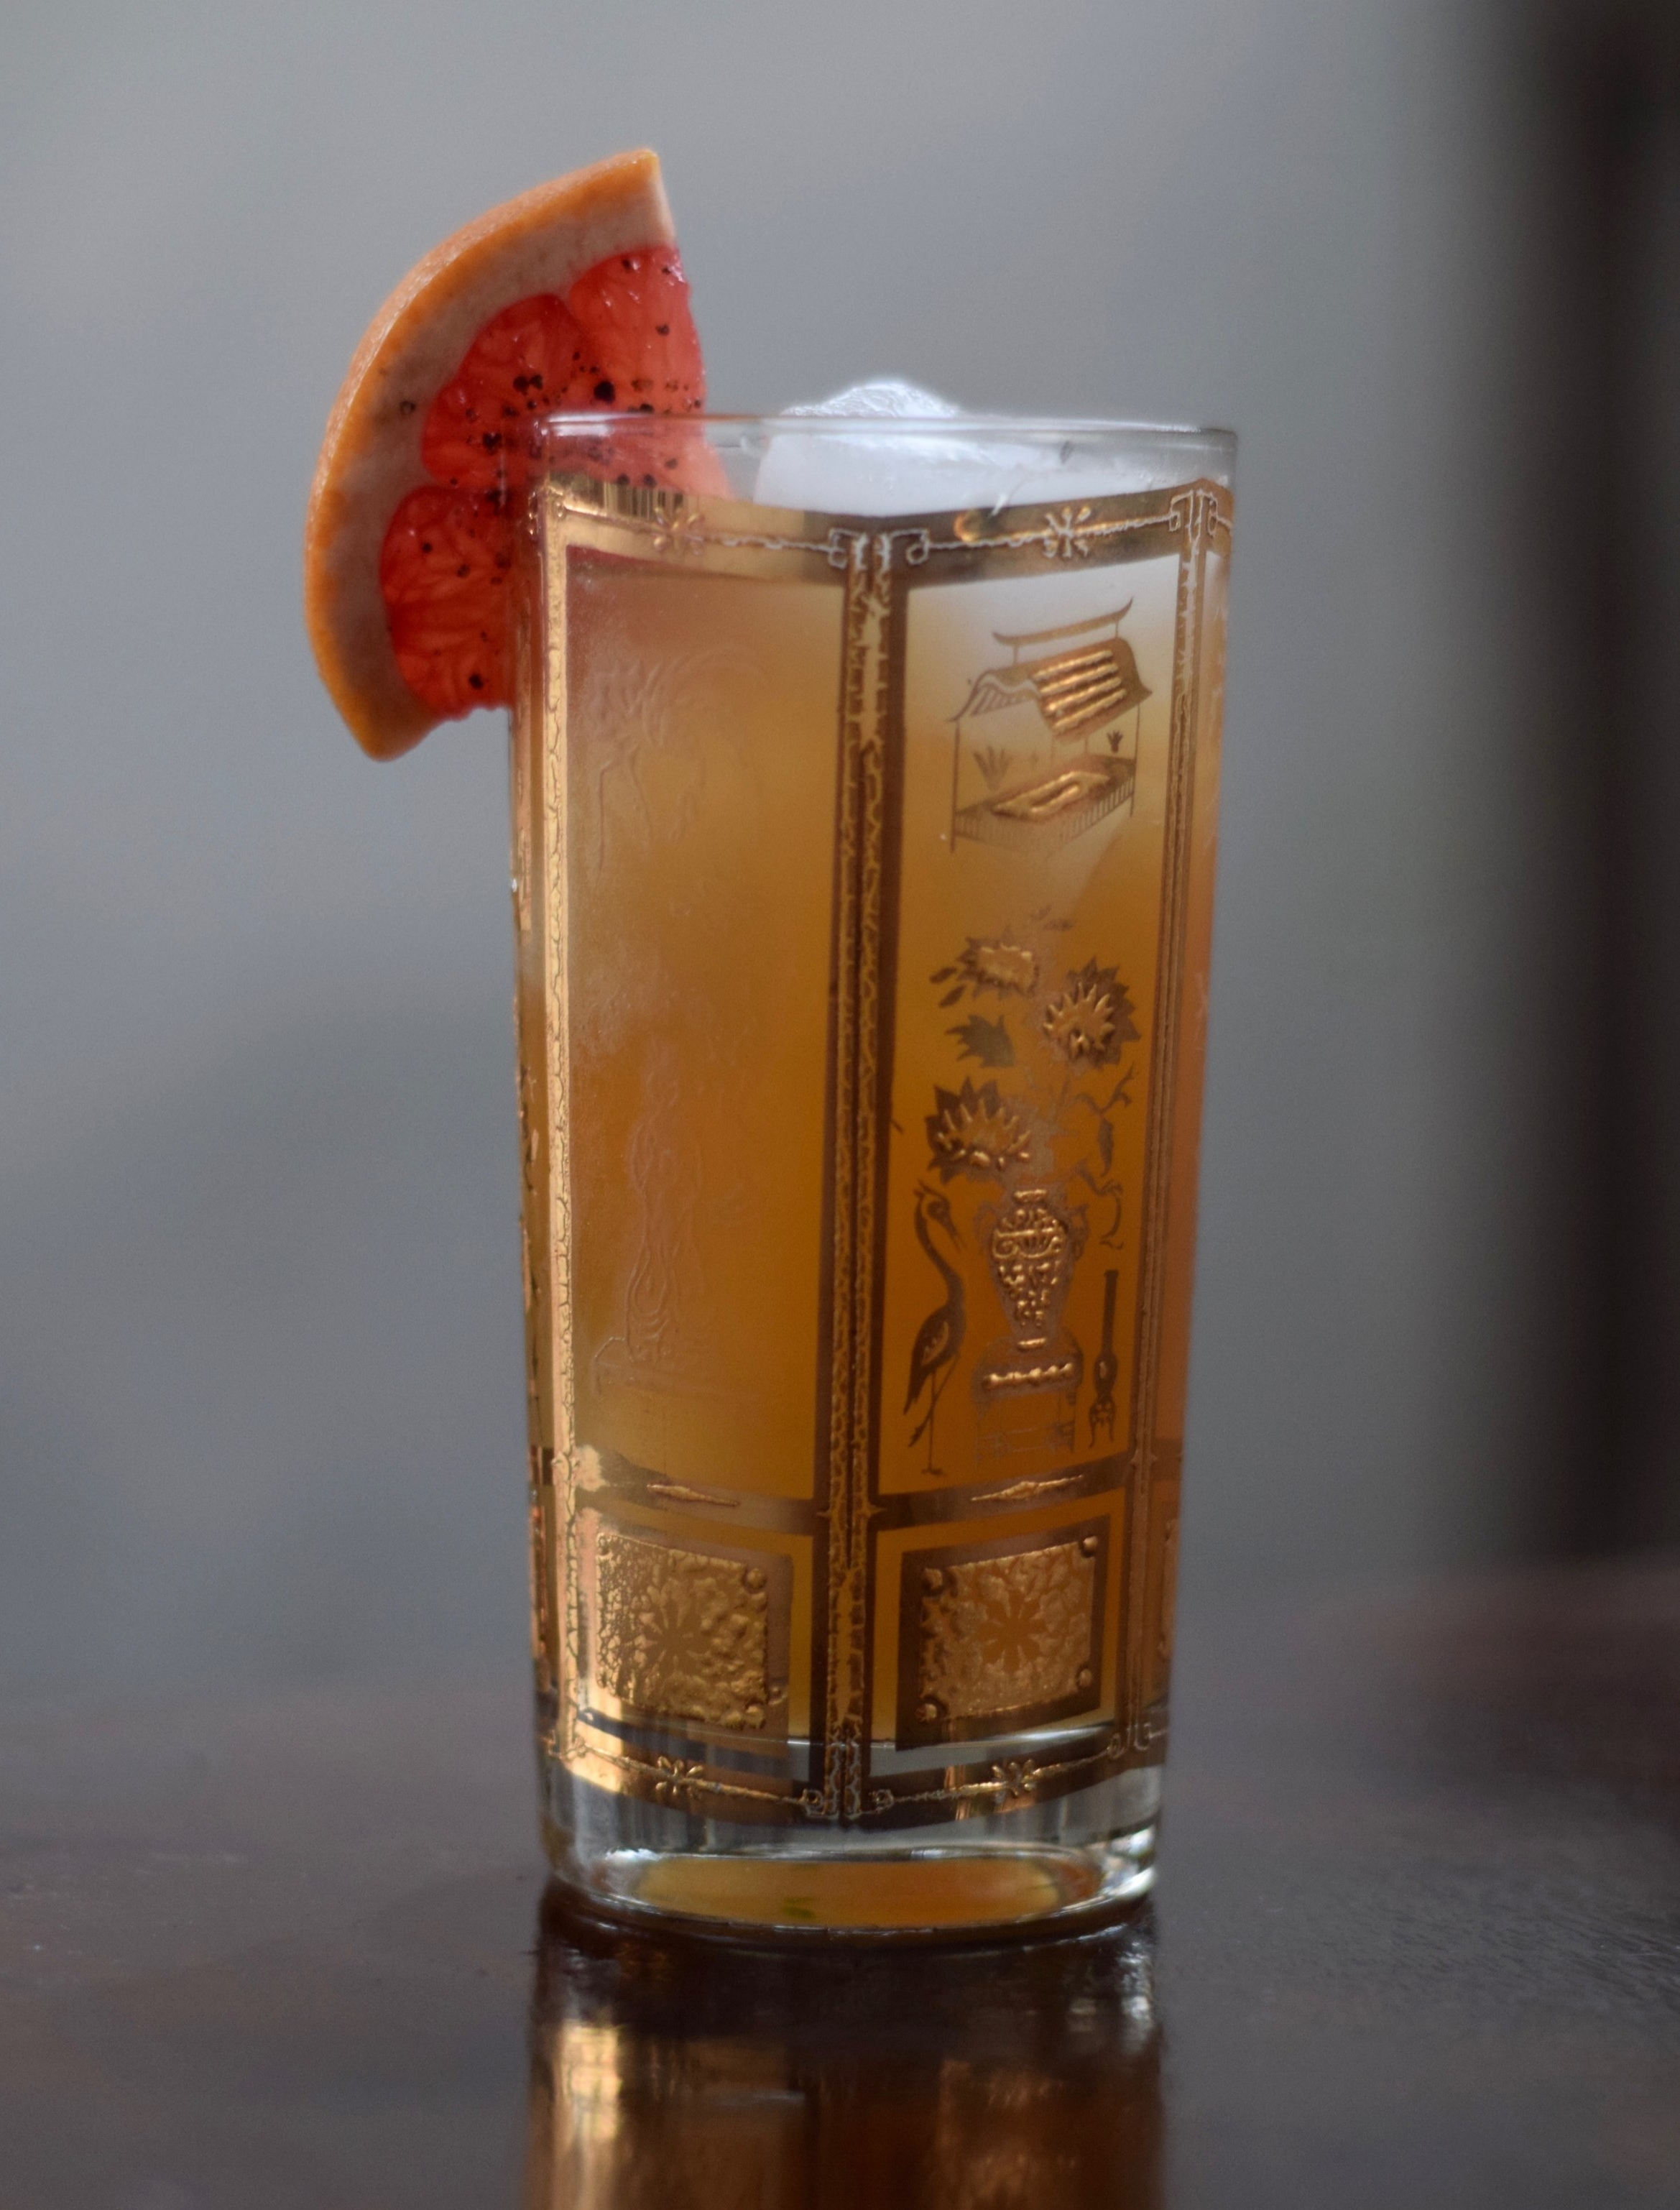 PALOMITA - 1 oz nostrum grapefruit piloncillo chipotle shrub1 oz fresh lime juice1/2 oz agave nectar2 dashes angostura bitters (optional)6 oz soda waterdirections: shake first three ingredients with ice.top with soda and strain over fresh ice.